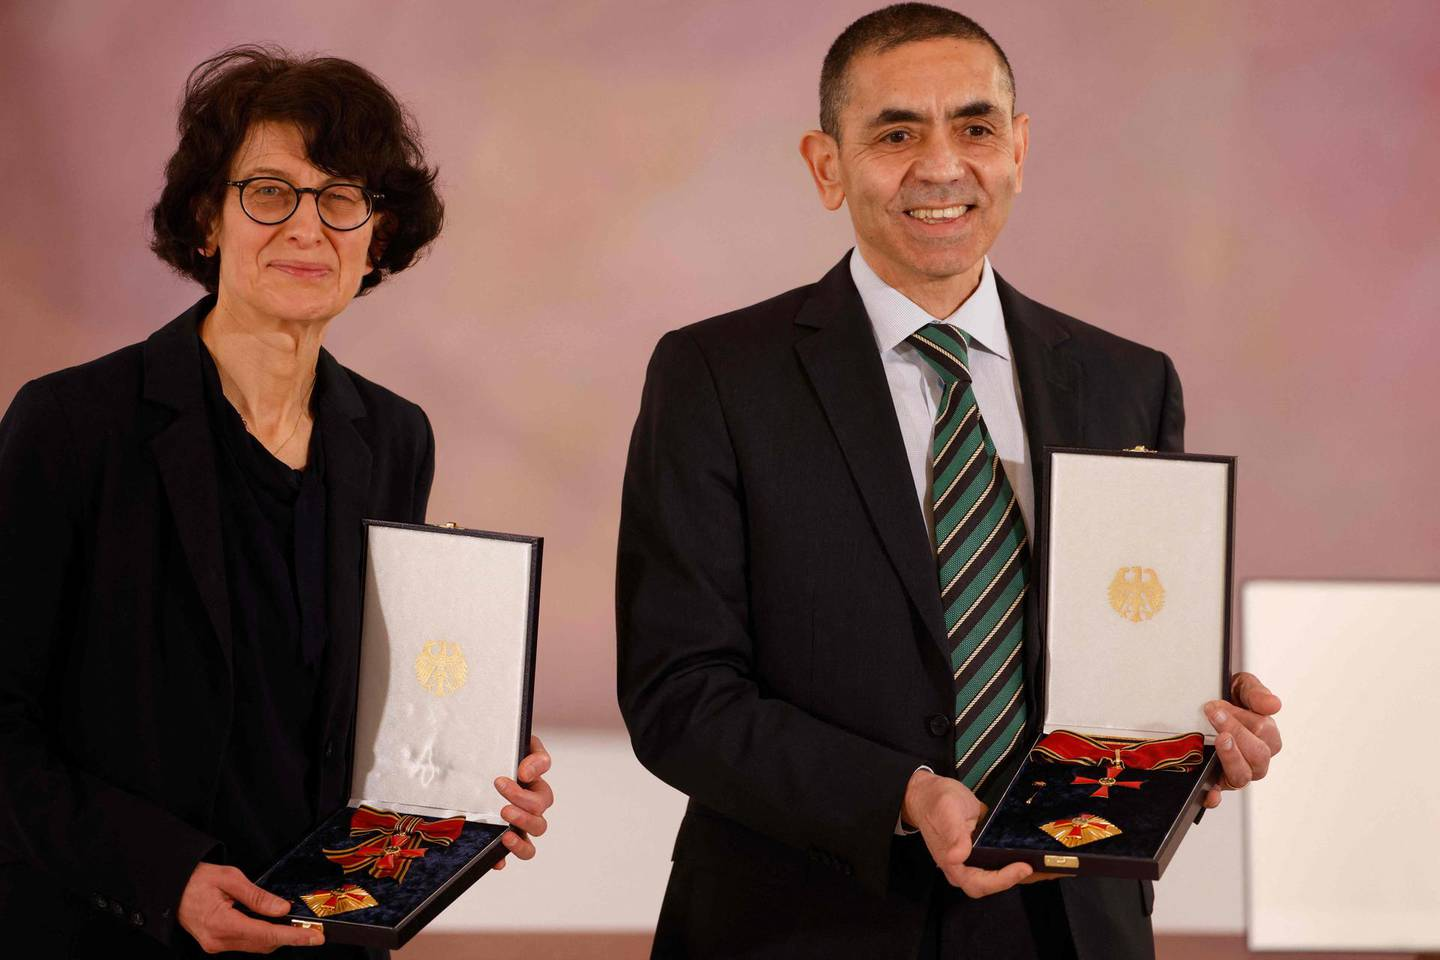 Ozlem Tureci (L) and her husband Ugur Sahin, both scientists and founders of BioNTech, pose with their orders after they were awarded the Federal Cross of Merit (Bundesverdienstkreuz) by the German President on March 19, 2021 at the presidential Bellevue Palace in Berlin. / AFP / POOL / Odd ANDERSEN